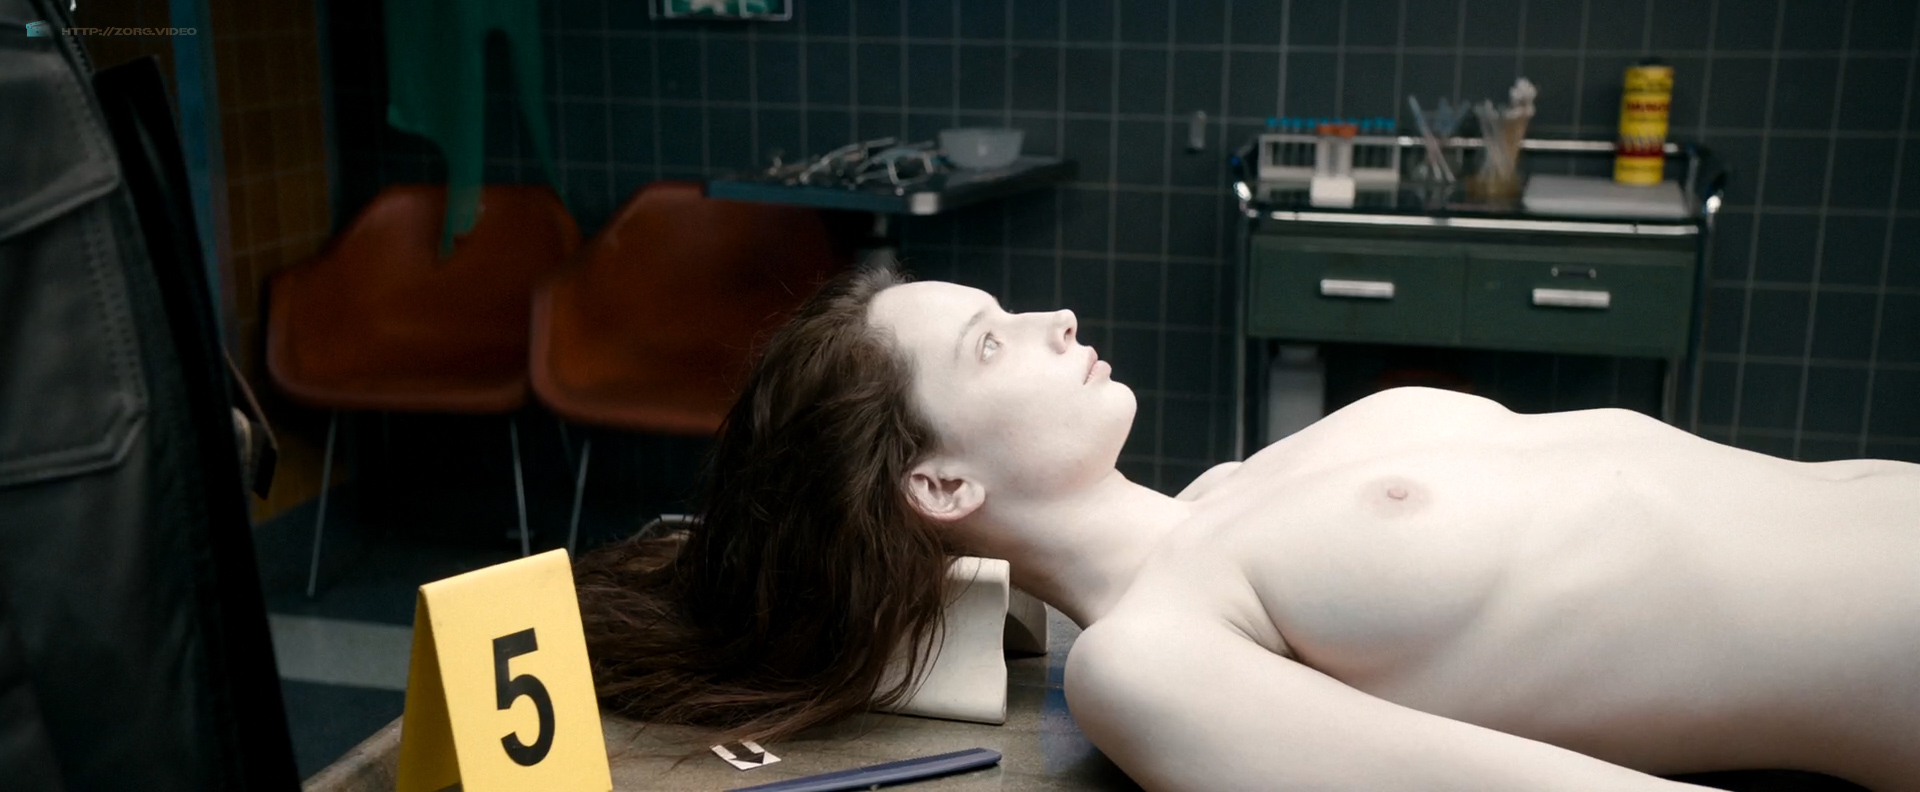 Olwen Catherine Kelly nude bush and boobs - The Autopsy of Jane Doe (2016) HD 1080p WebDl (3)